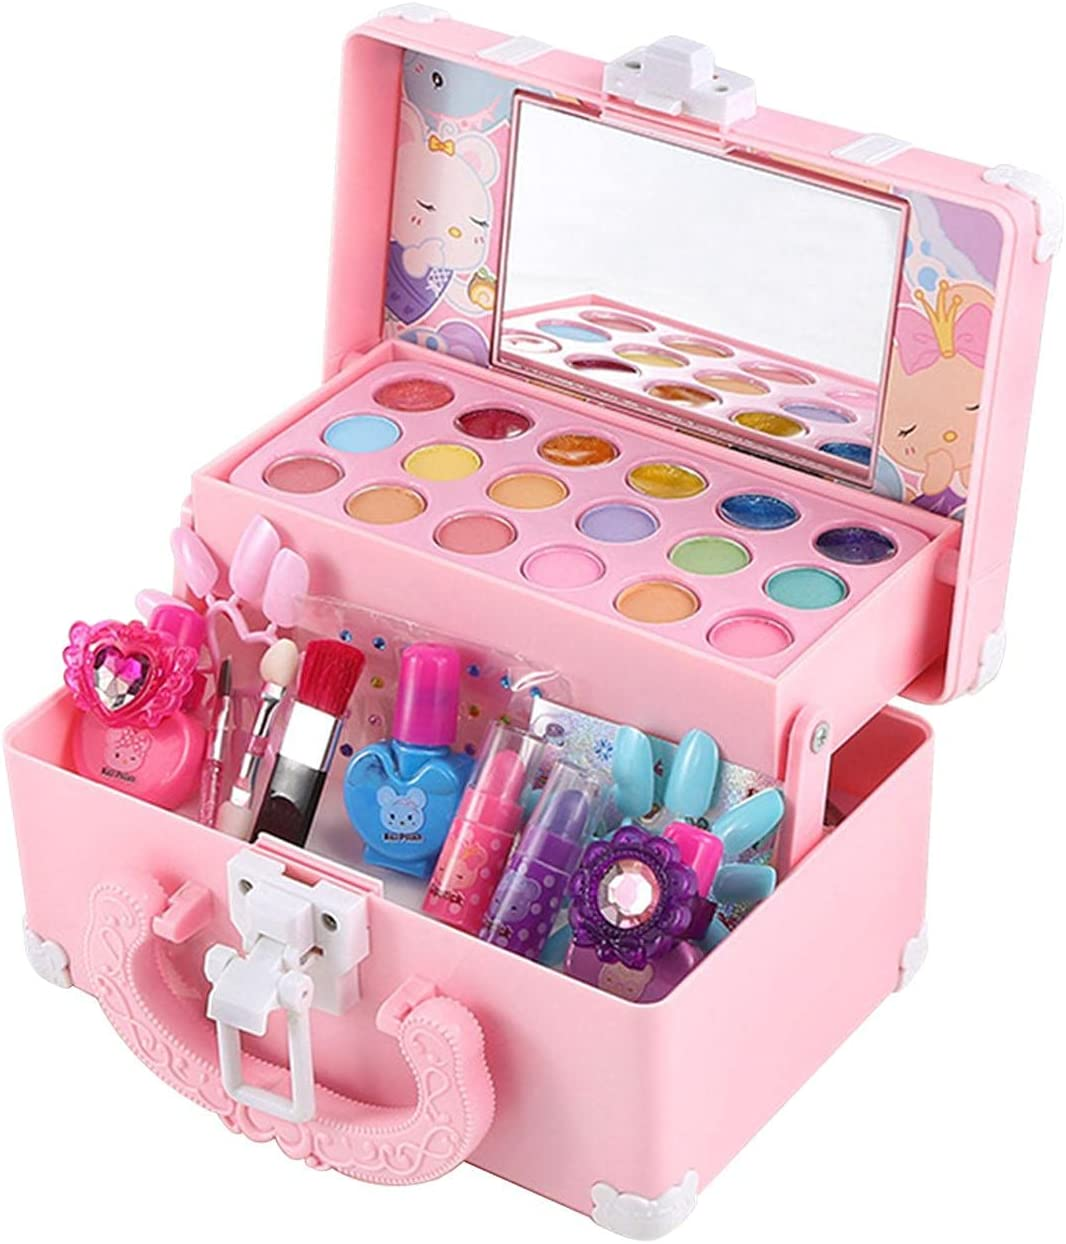 Kids Make it Up Kit Washable for P Girls Makeup Surprise price Max 71% OFF Pretend Toys